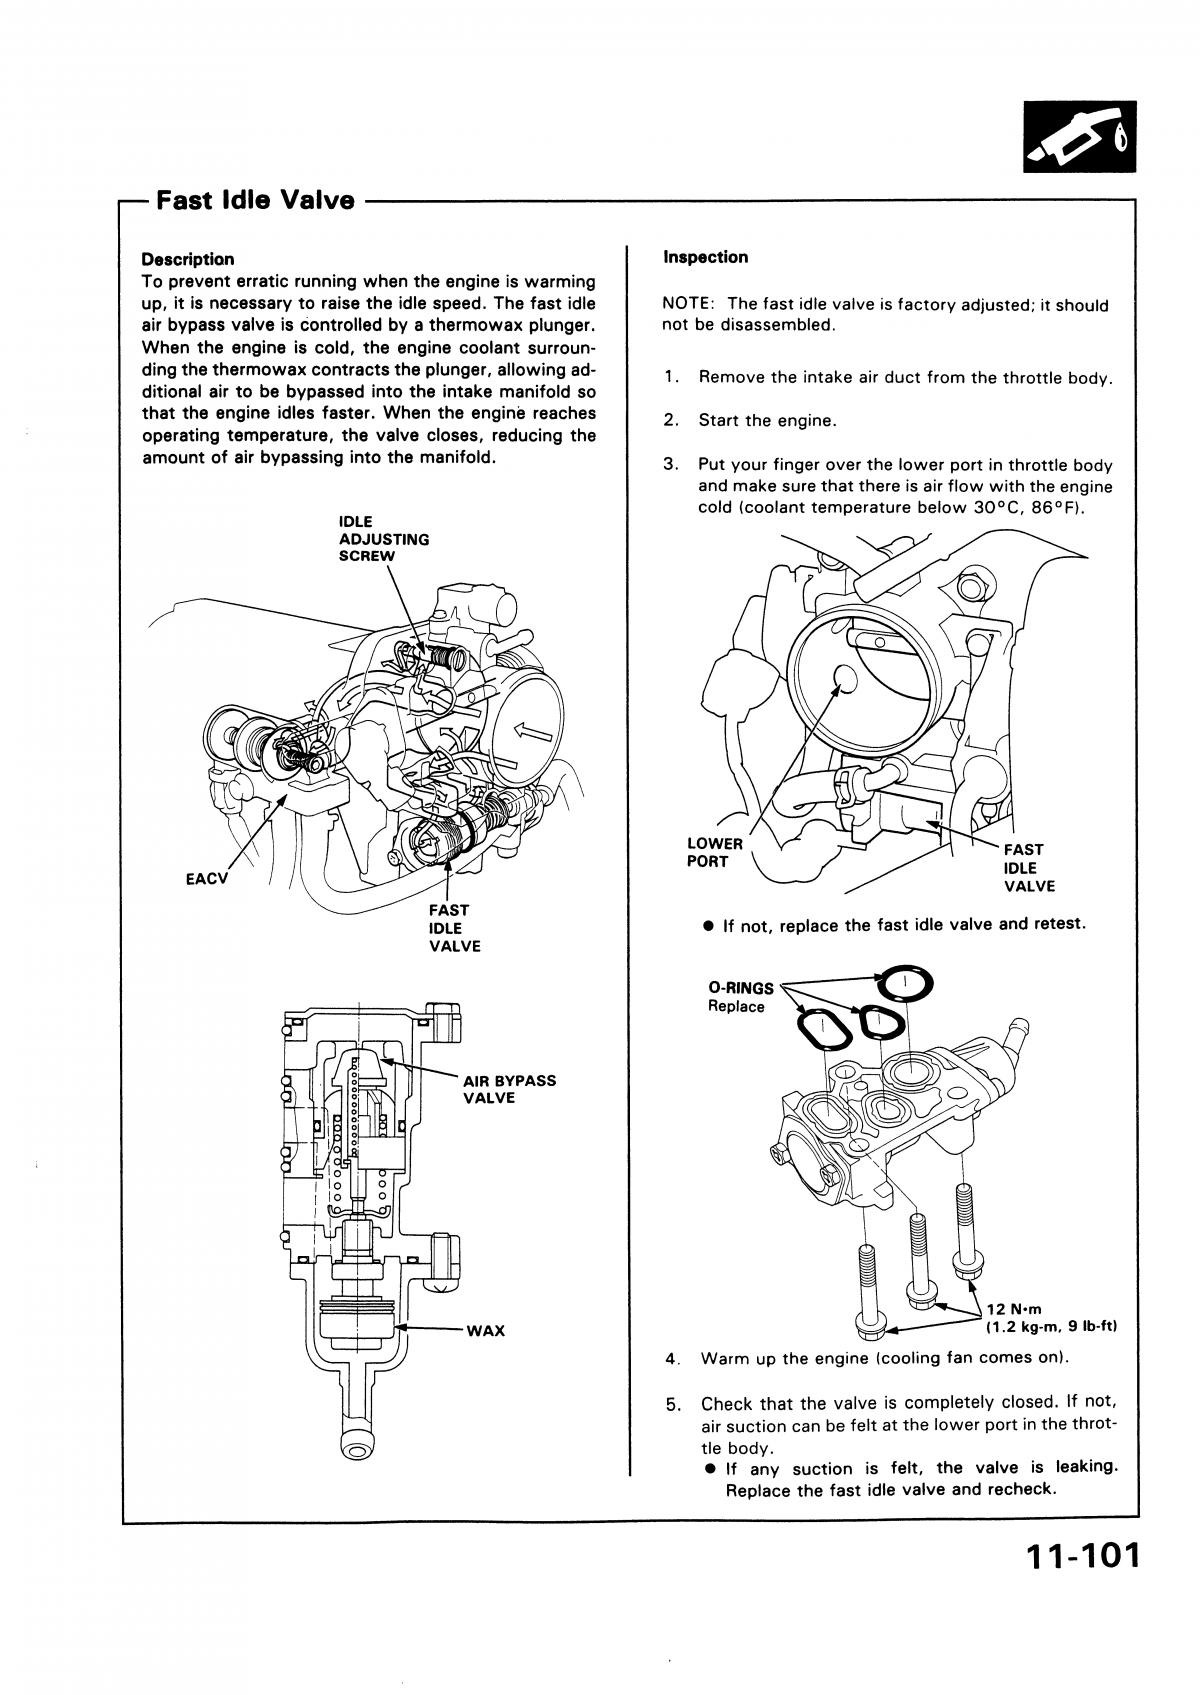 Subaru Ej22 Wiring Diagram Schematic Diagrams Ea81 1995 Legacy Radio Nissan Vg30de Engine Lt1 Electrical